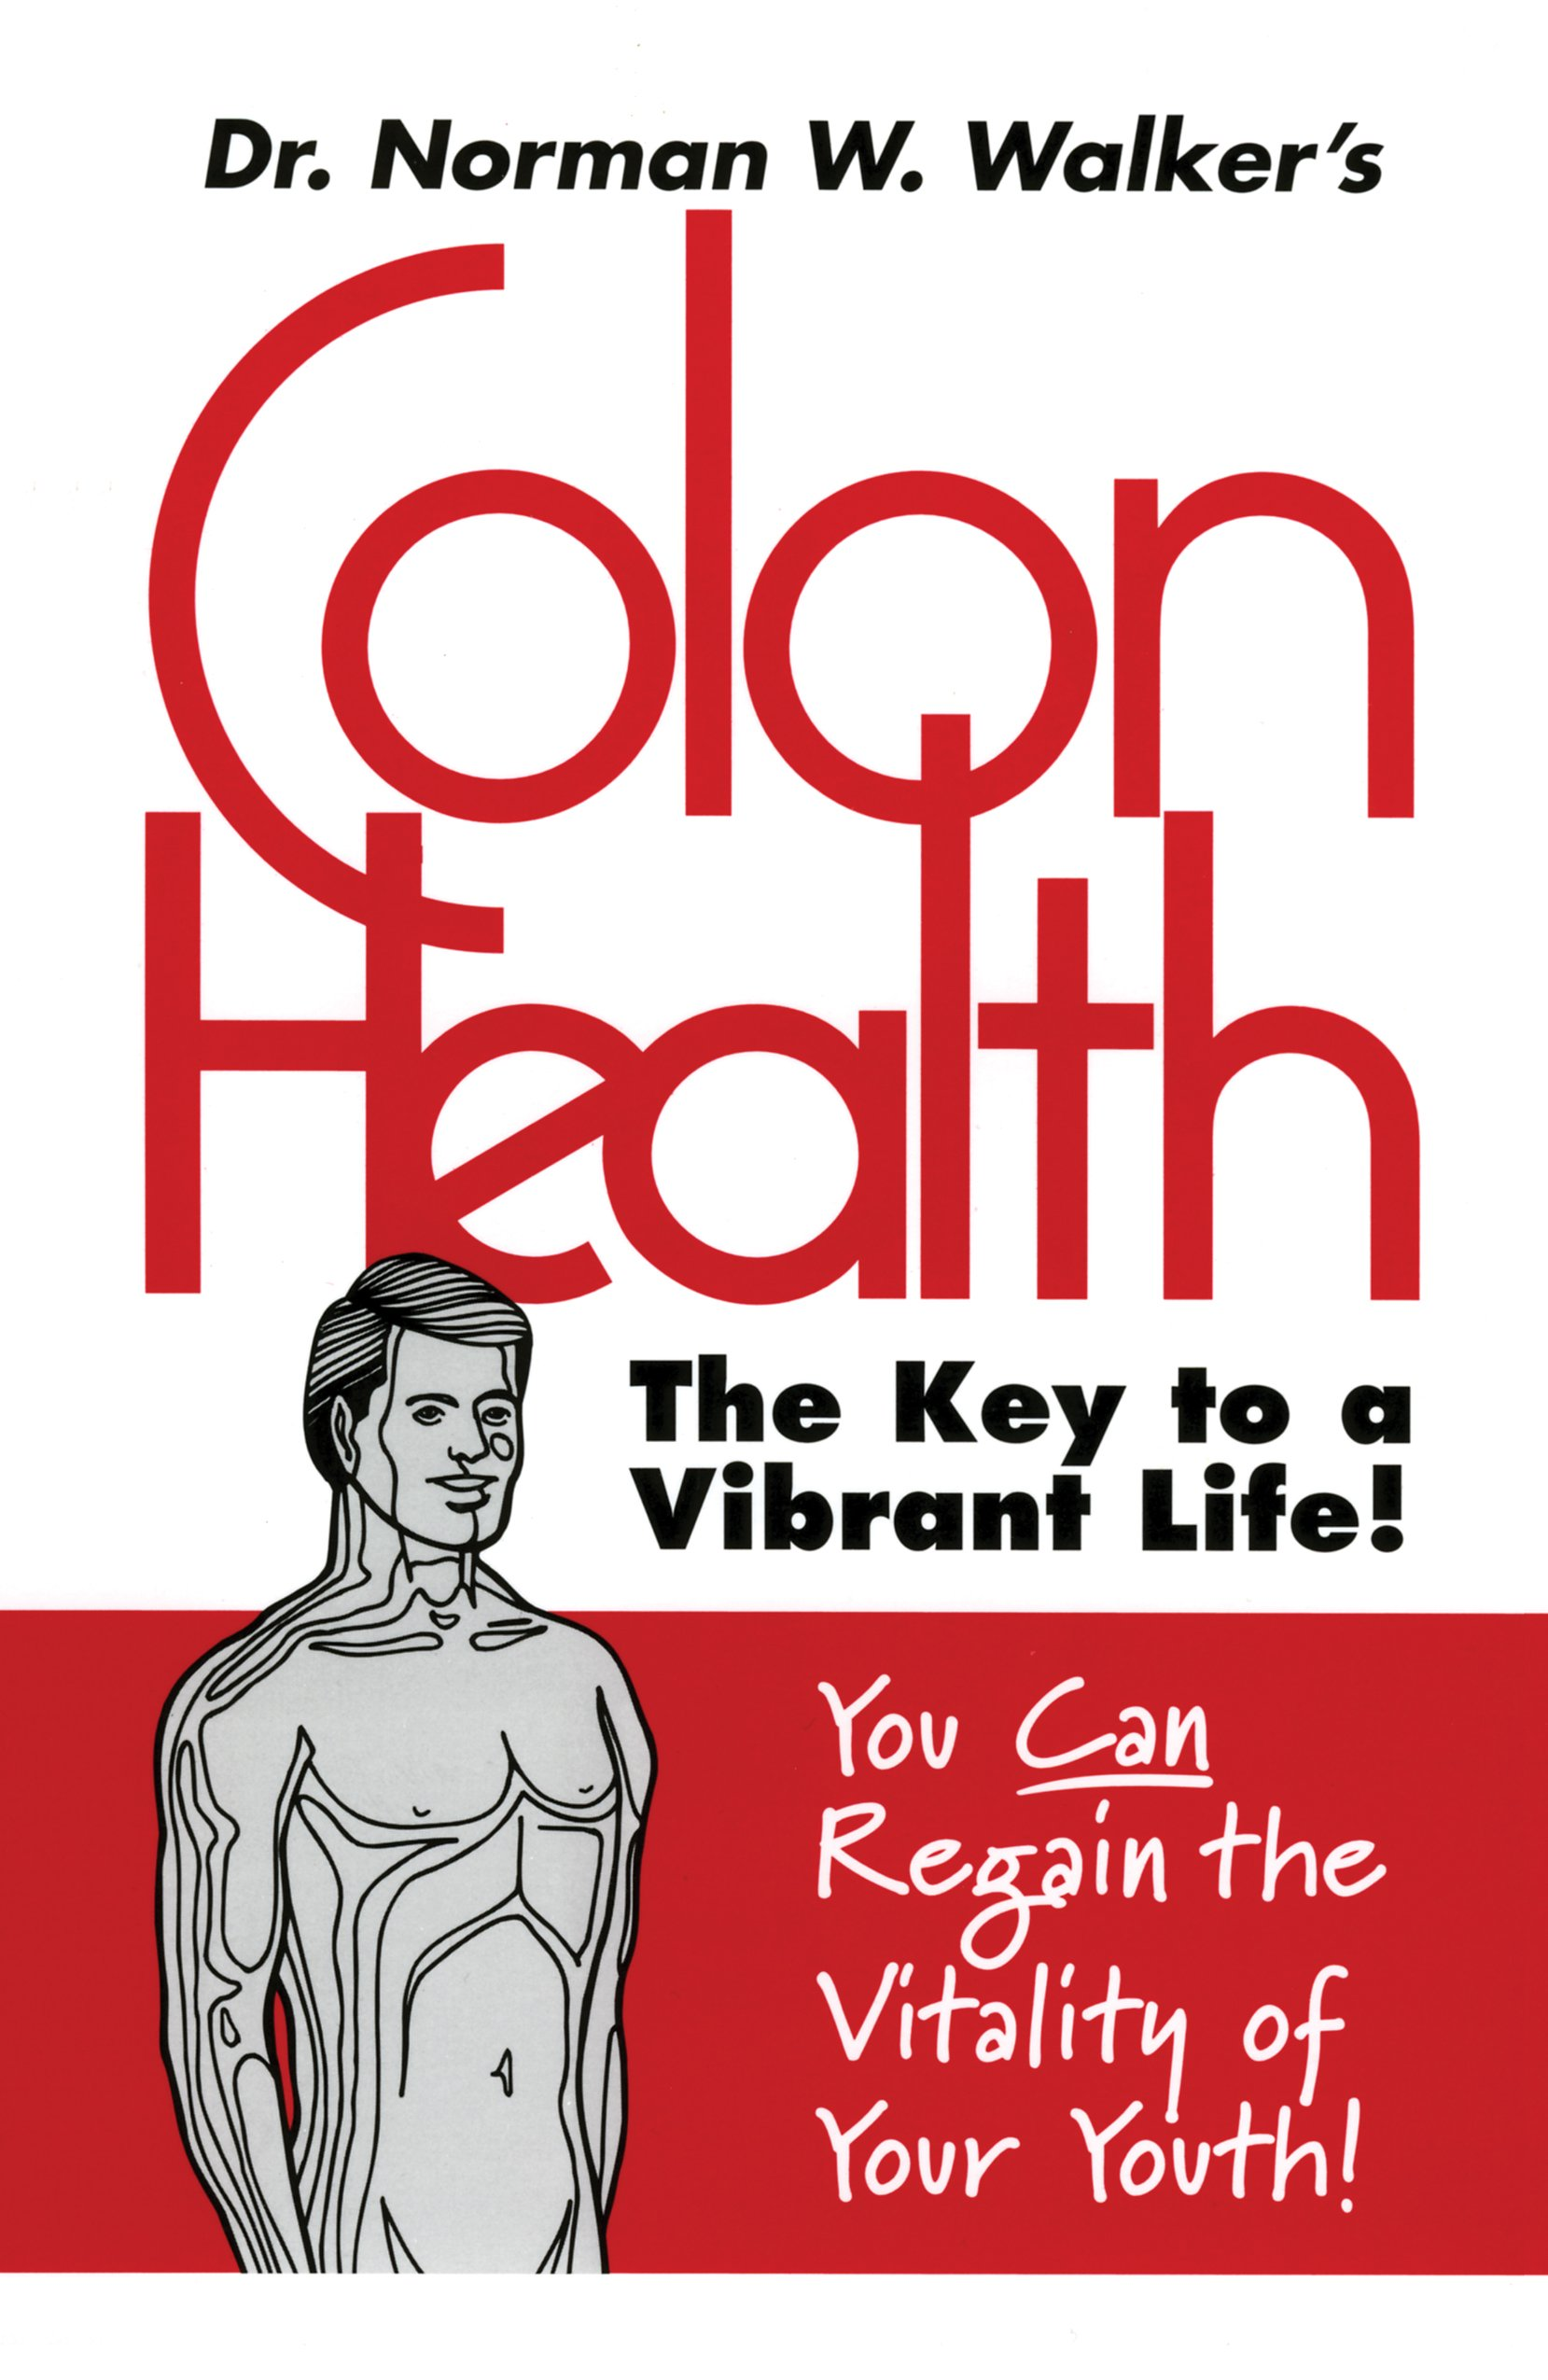 colon health: key to vibrant life - by Dr. Norman WalkerDr. Walker focuses your full attention on this forgotten part of the body. He will lead you on a tour of each vital organ of your body explaining how it is affected by the condition of the large intestine, the colon. Learn how through proper care of the colon you can prevent and experience relief from constipation, asthma, colds, allergies, respiratory disorders, digestive problems and numerous other ailments.Dr. Norman W. Walker is one of the pioneers of the raw foods movement and is recognized throughout the world as one of the most authoritative voices on life, health and nutrition. Dr. Walker shares his secret to a long, healthy, productive life through his internationally famous books on health and nutrition.